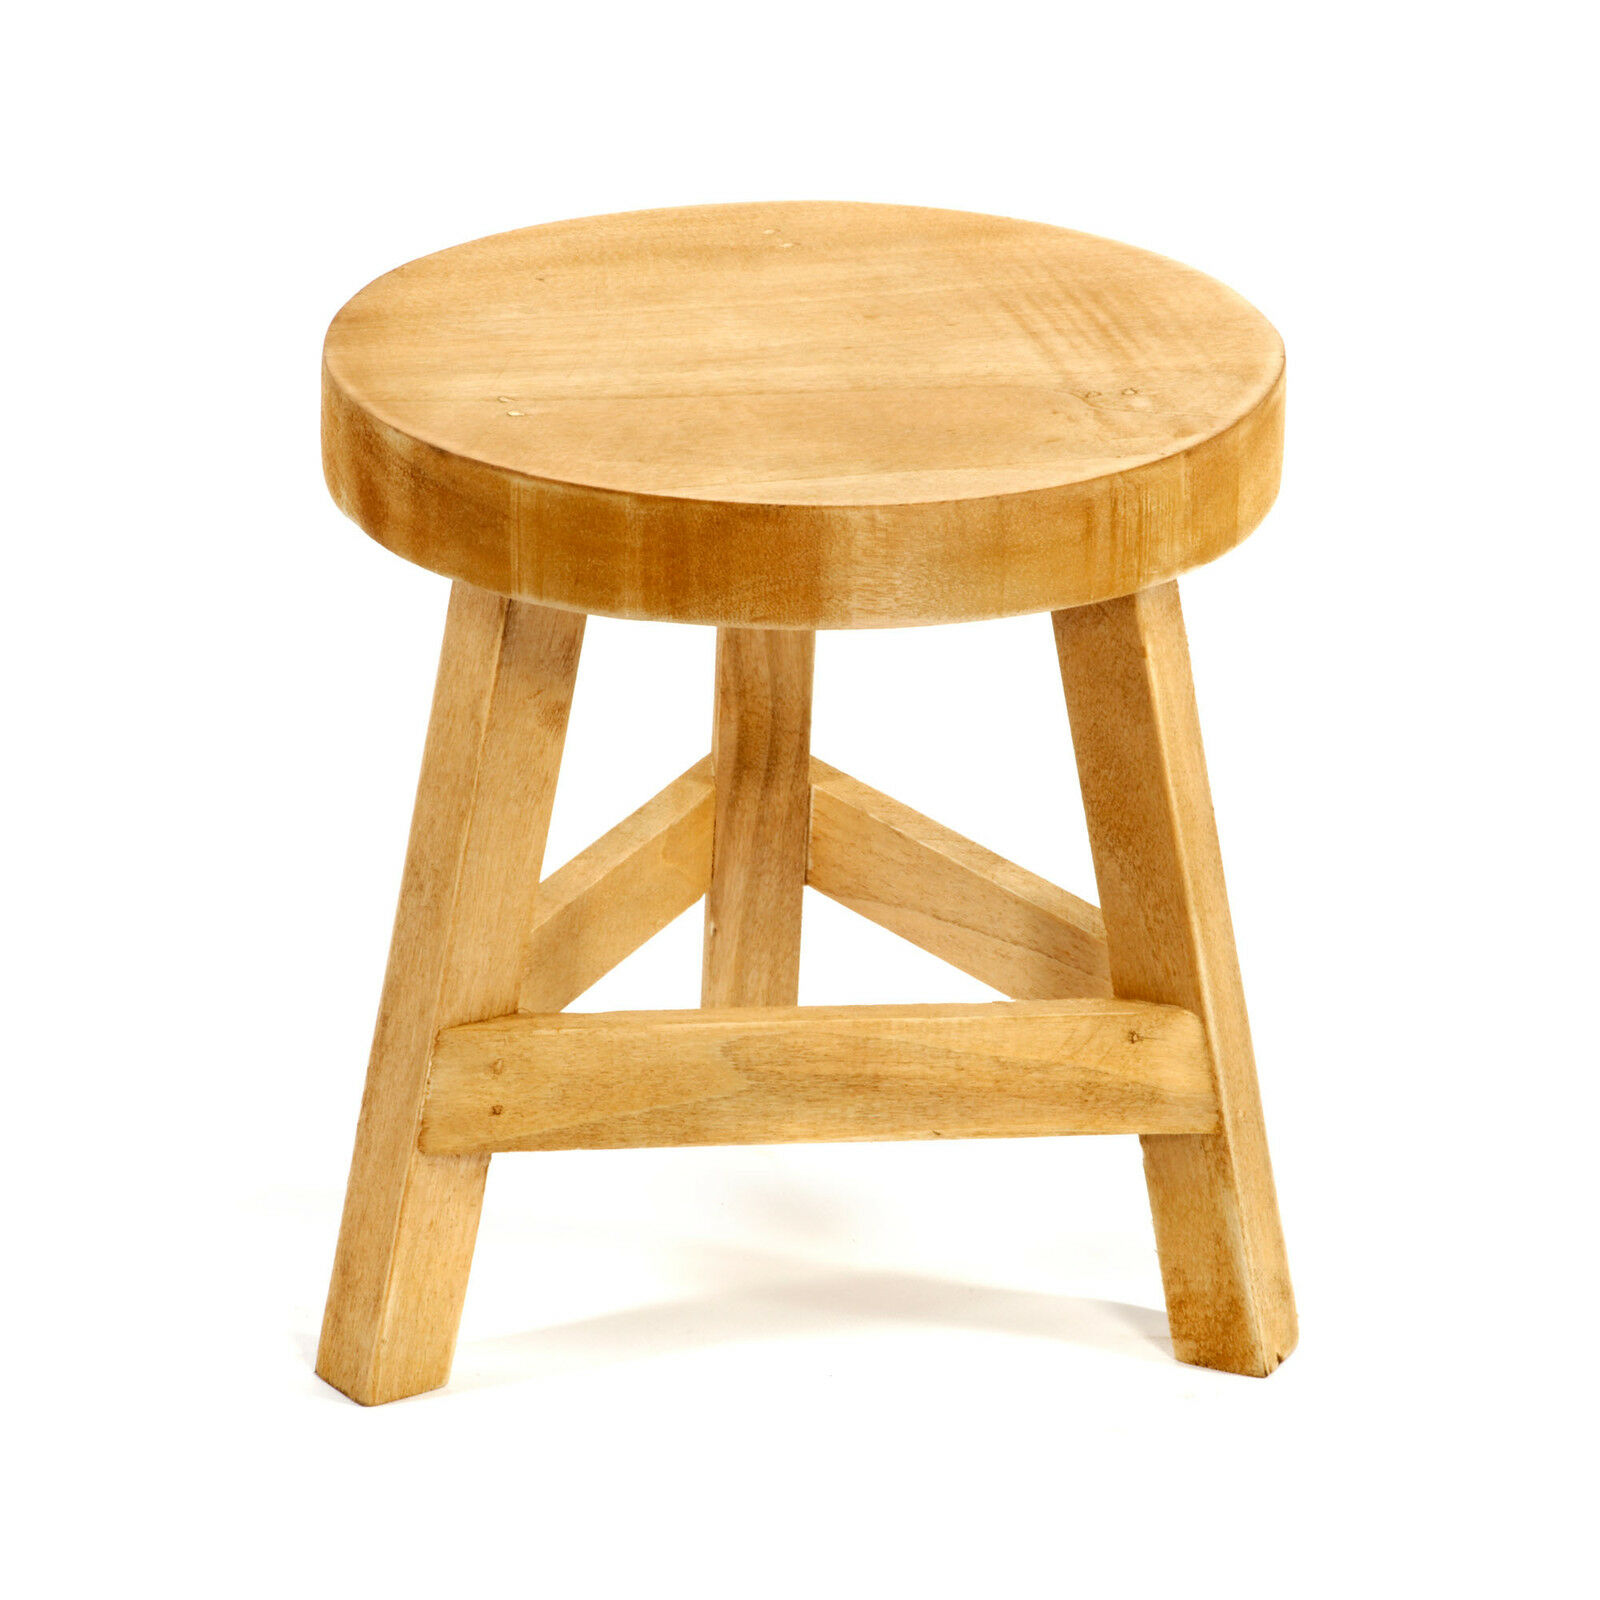 Shabby Chic Wooden Three Legged Stool 23cm High Home